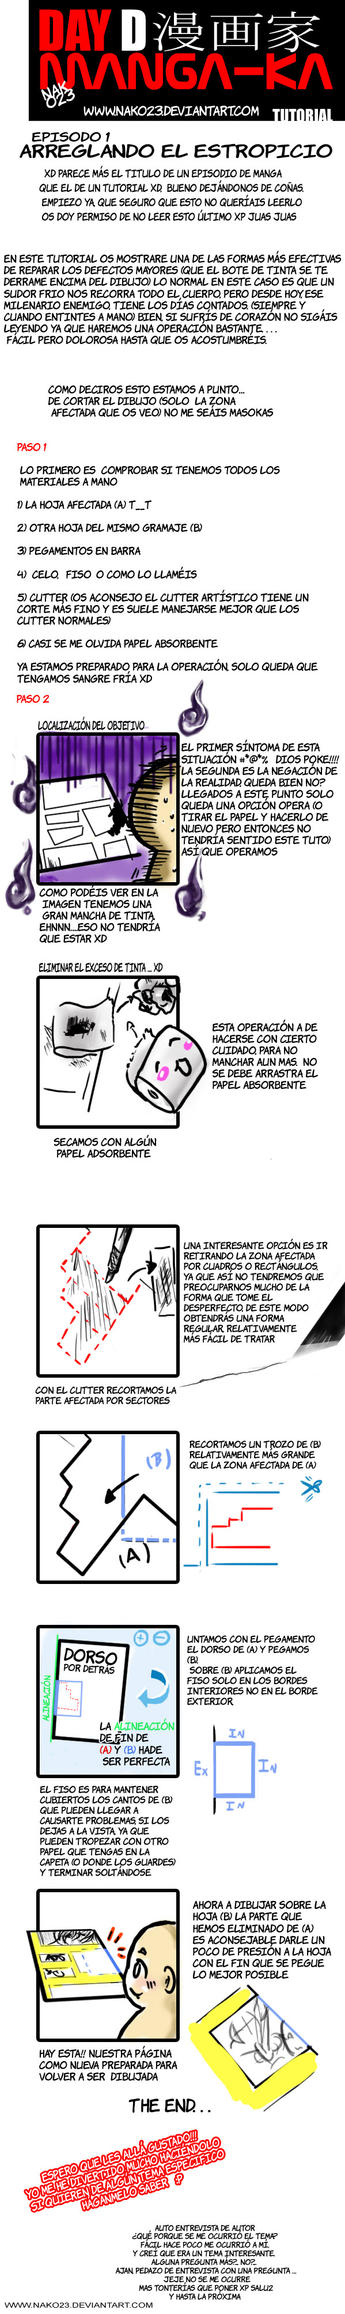 Correccion de error en elmanga by noticias